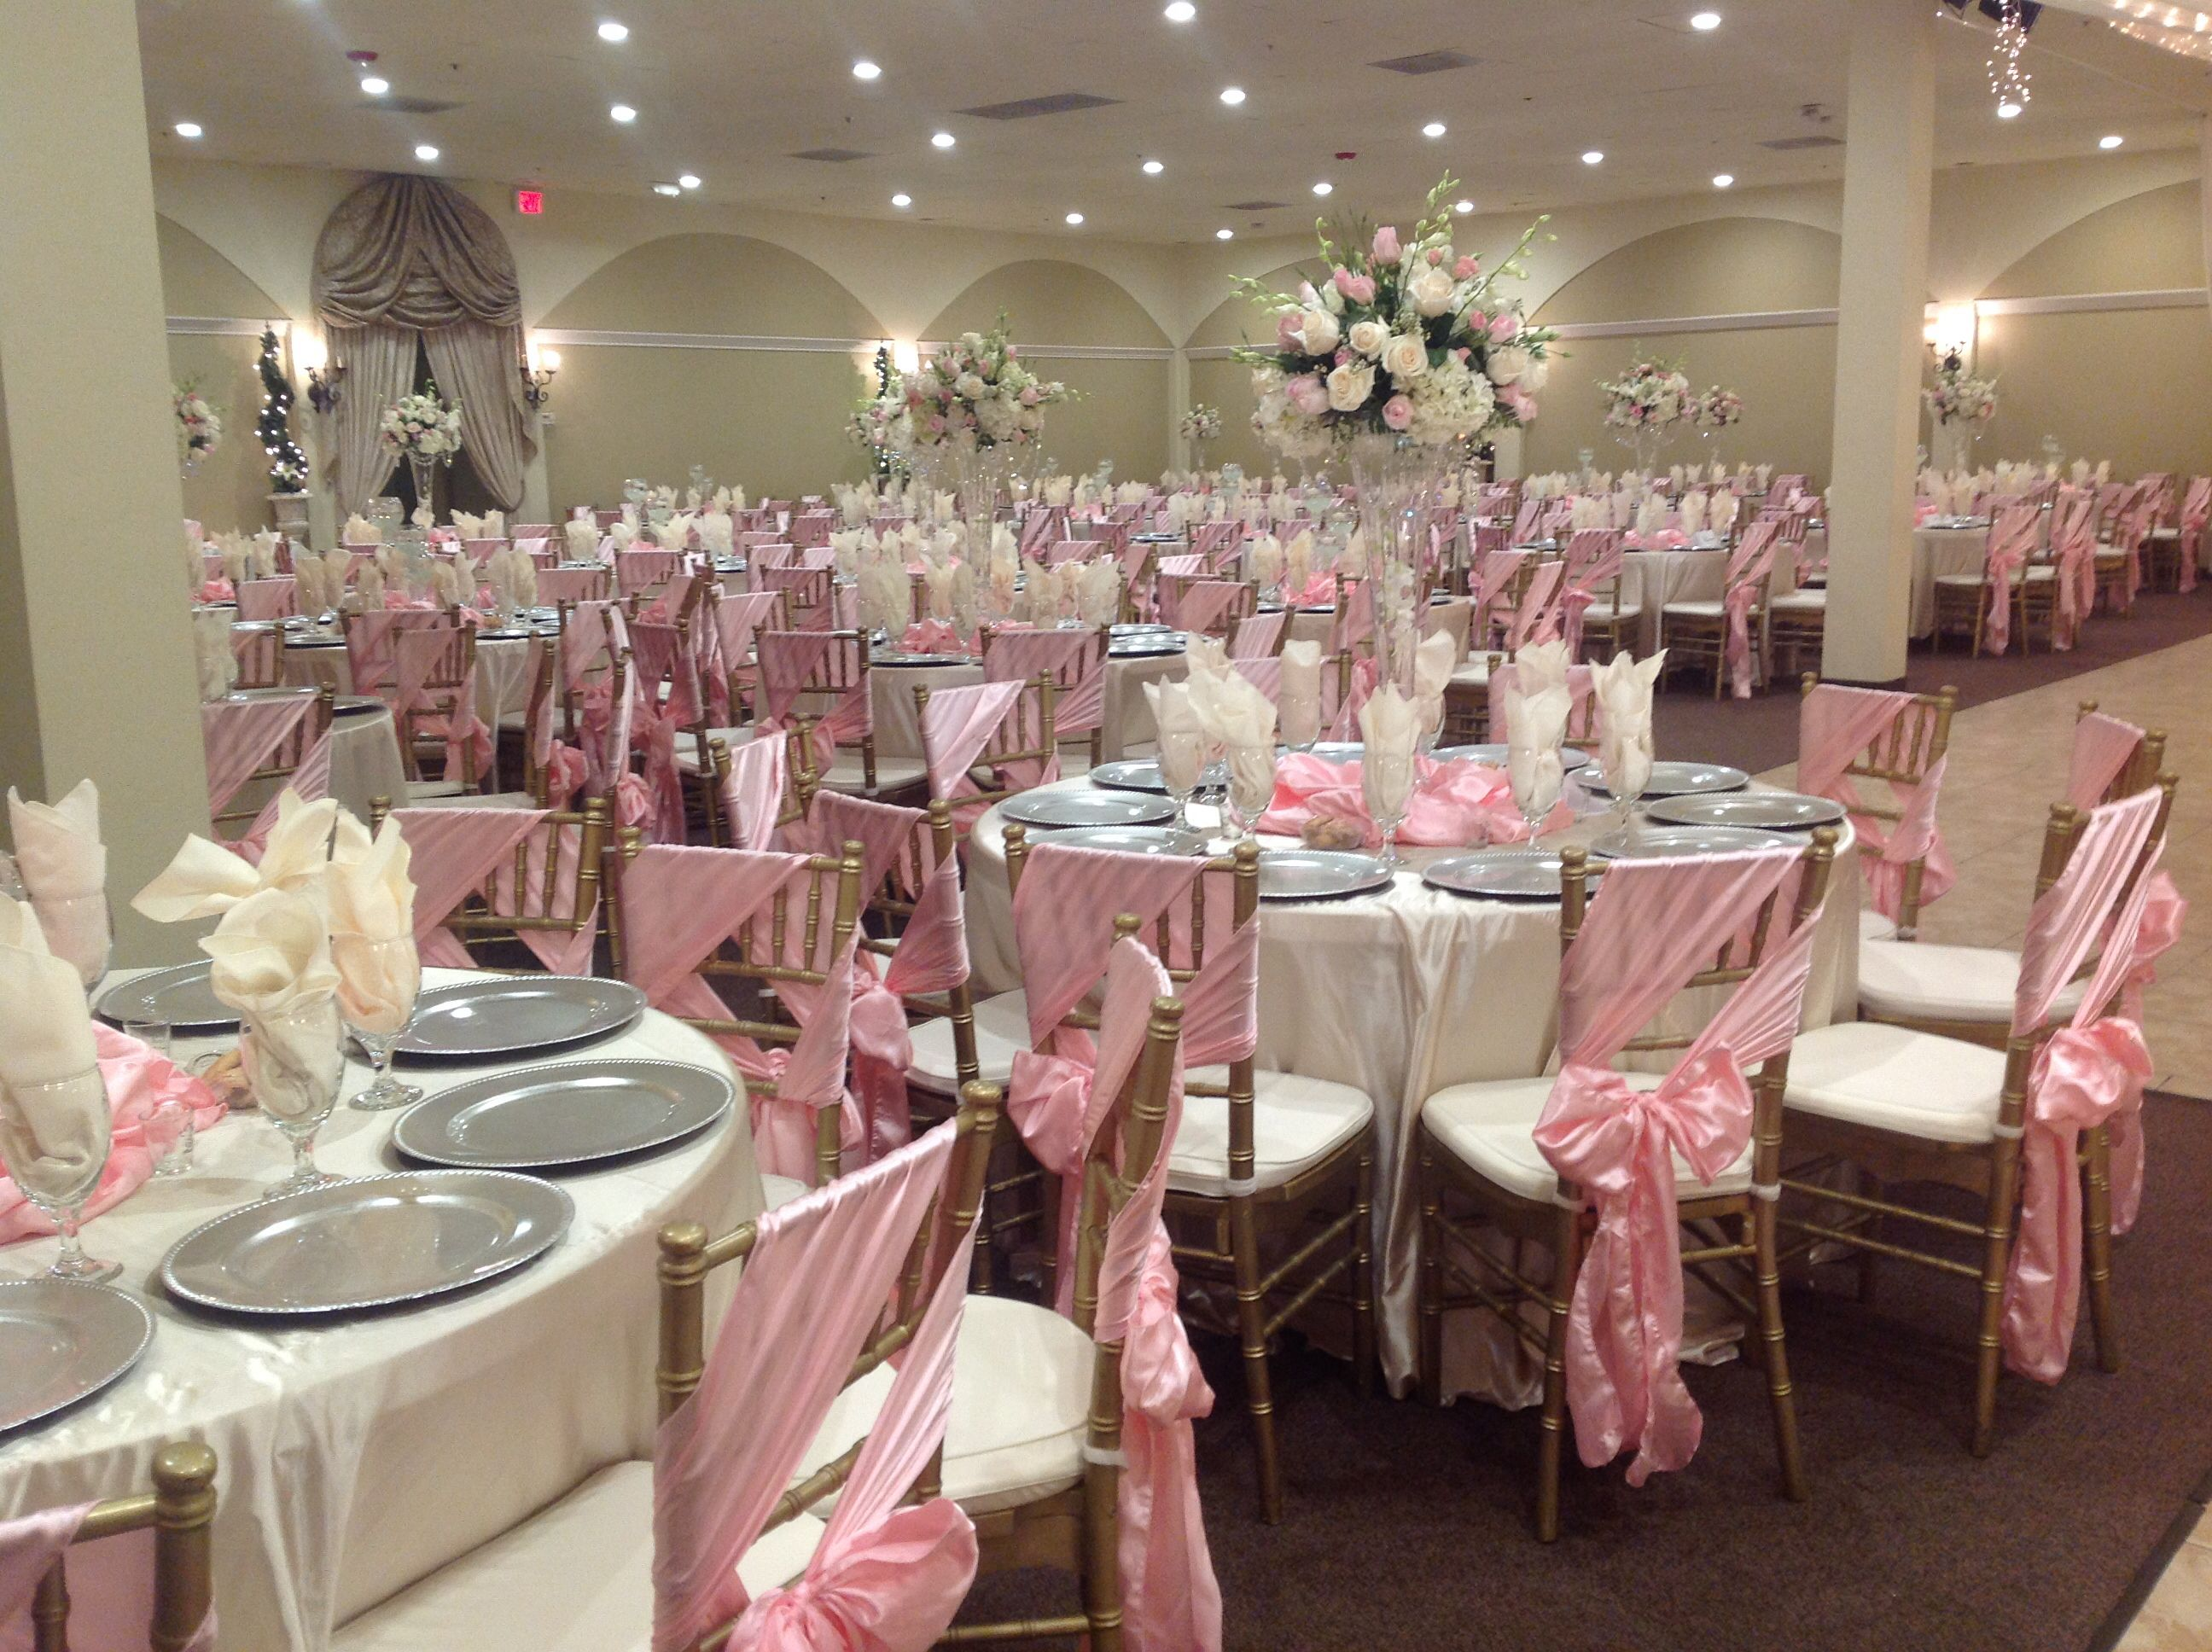 Quinceanera Hall Decorations Pink Champaign and b...